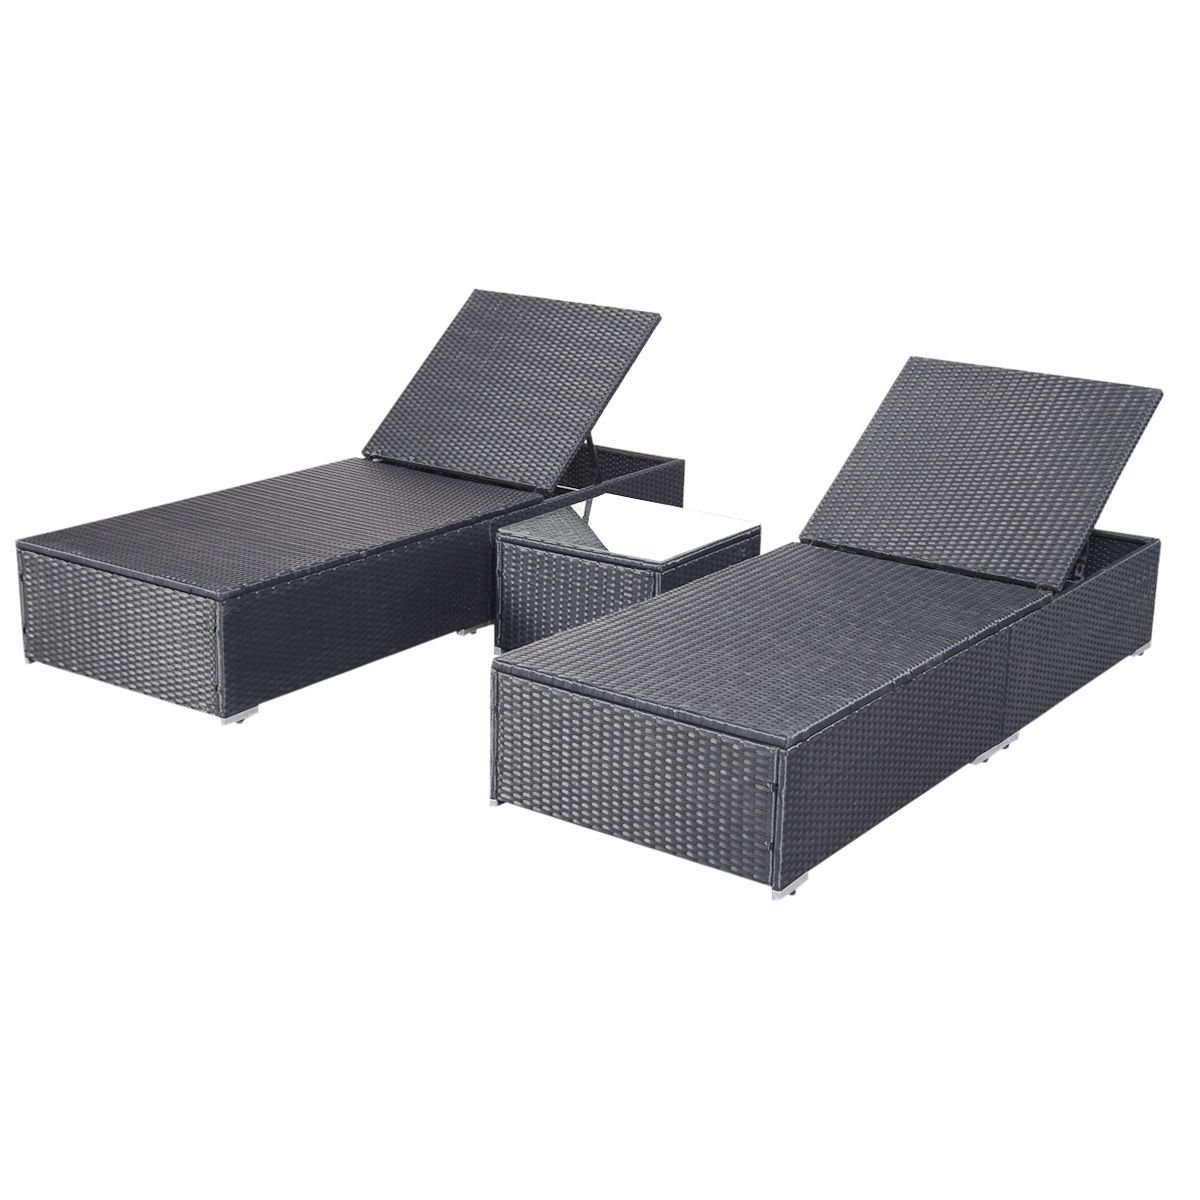 Outdoor : Target Lounge Chairs Vinyl Strap Chaise Lounge Outdoor With 2017 Vinyl Strap Chaise Lounge Chairs (View 15 of 15)